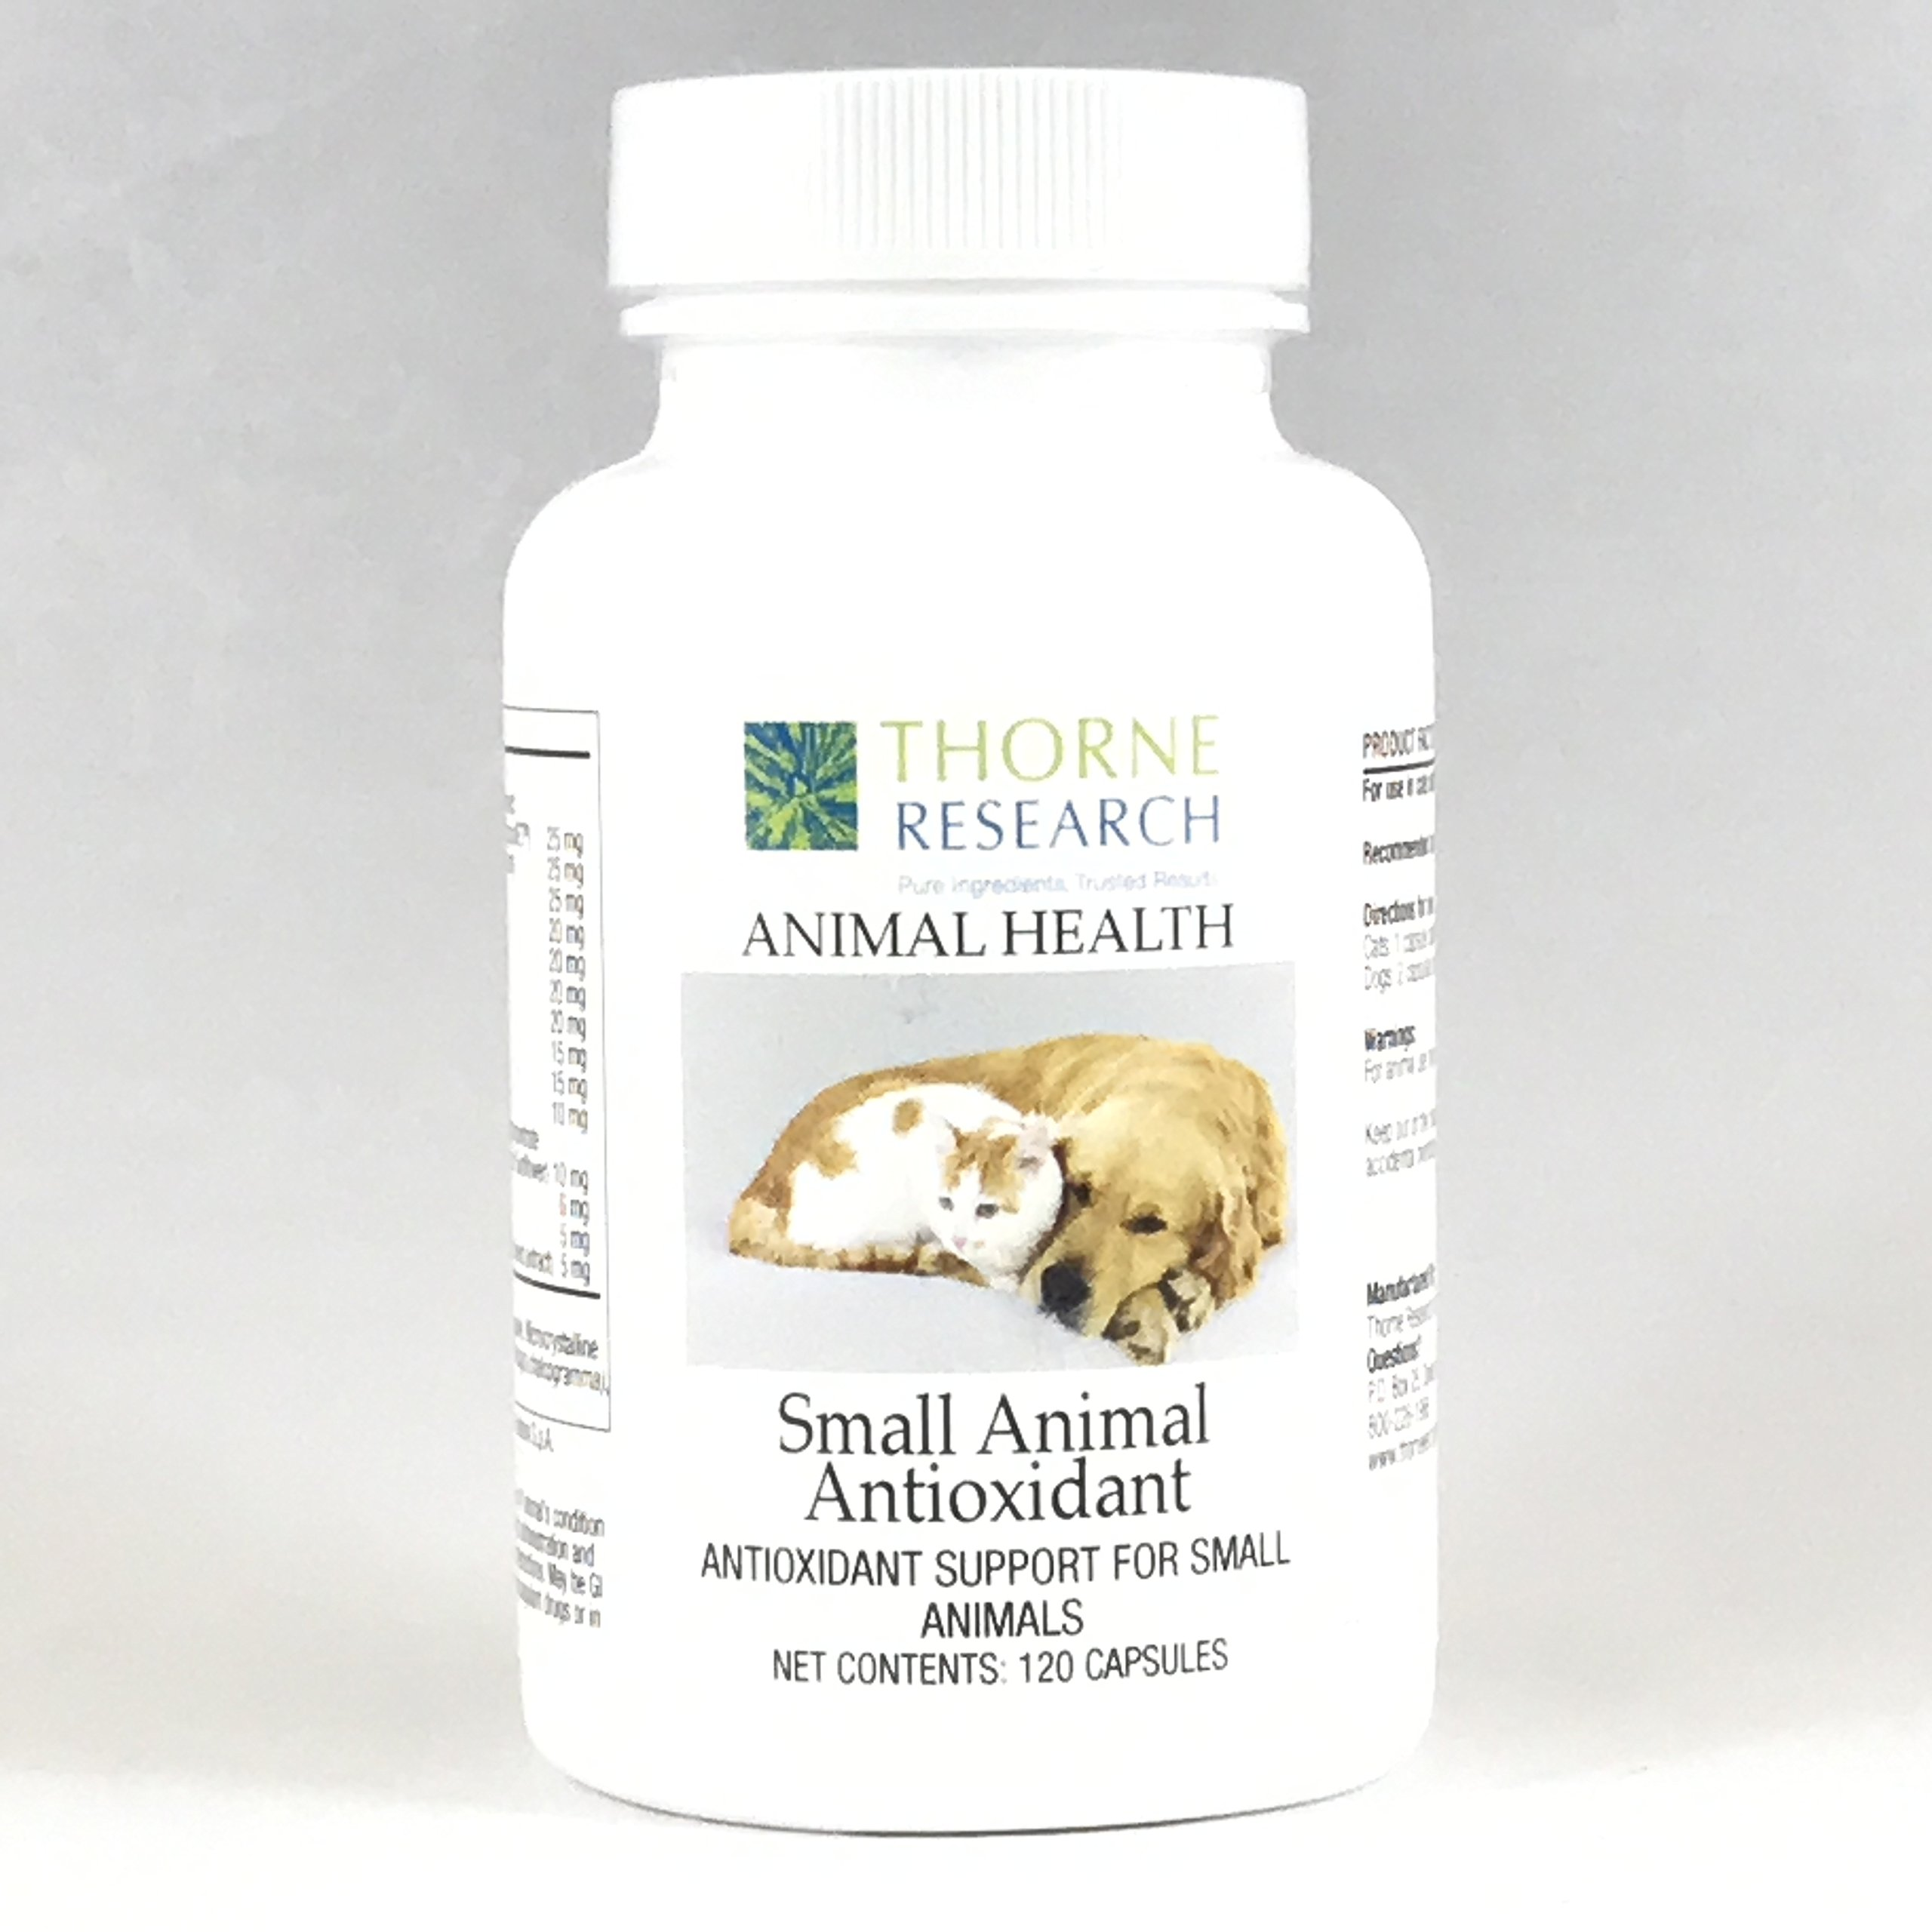 Thorne Research Veterinary - Small Animal Antioxidant - Antioxidant Support for Small Animals - 120 Capsules